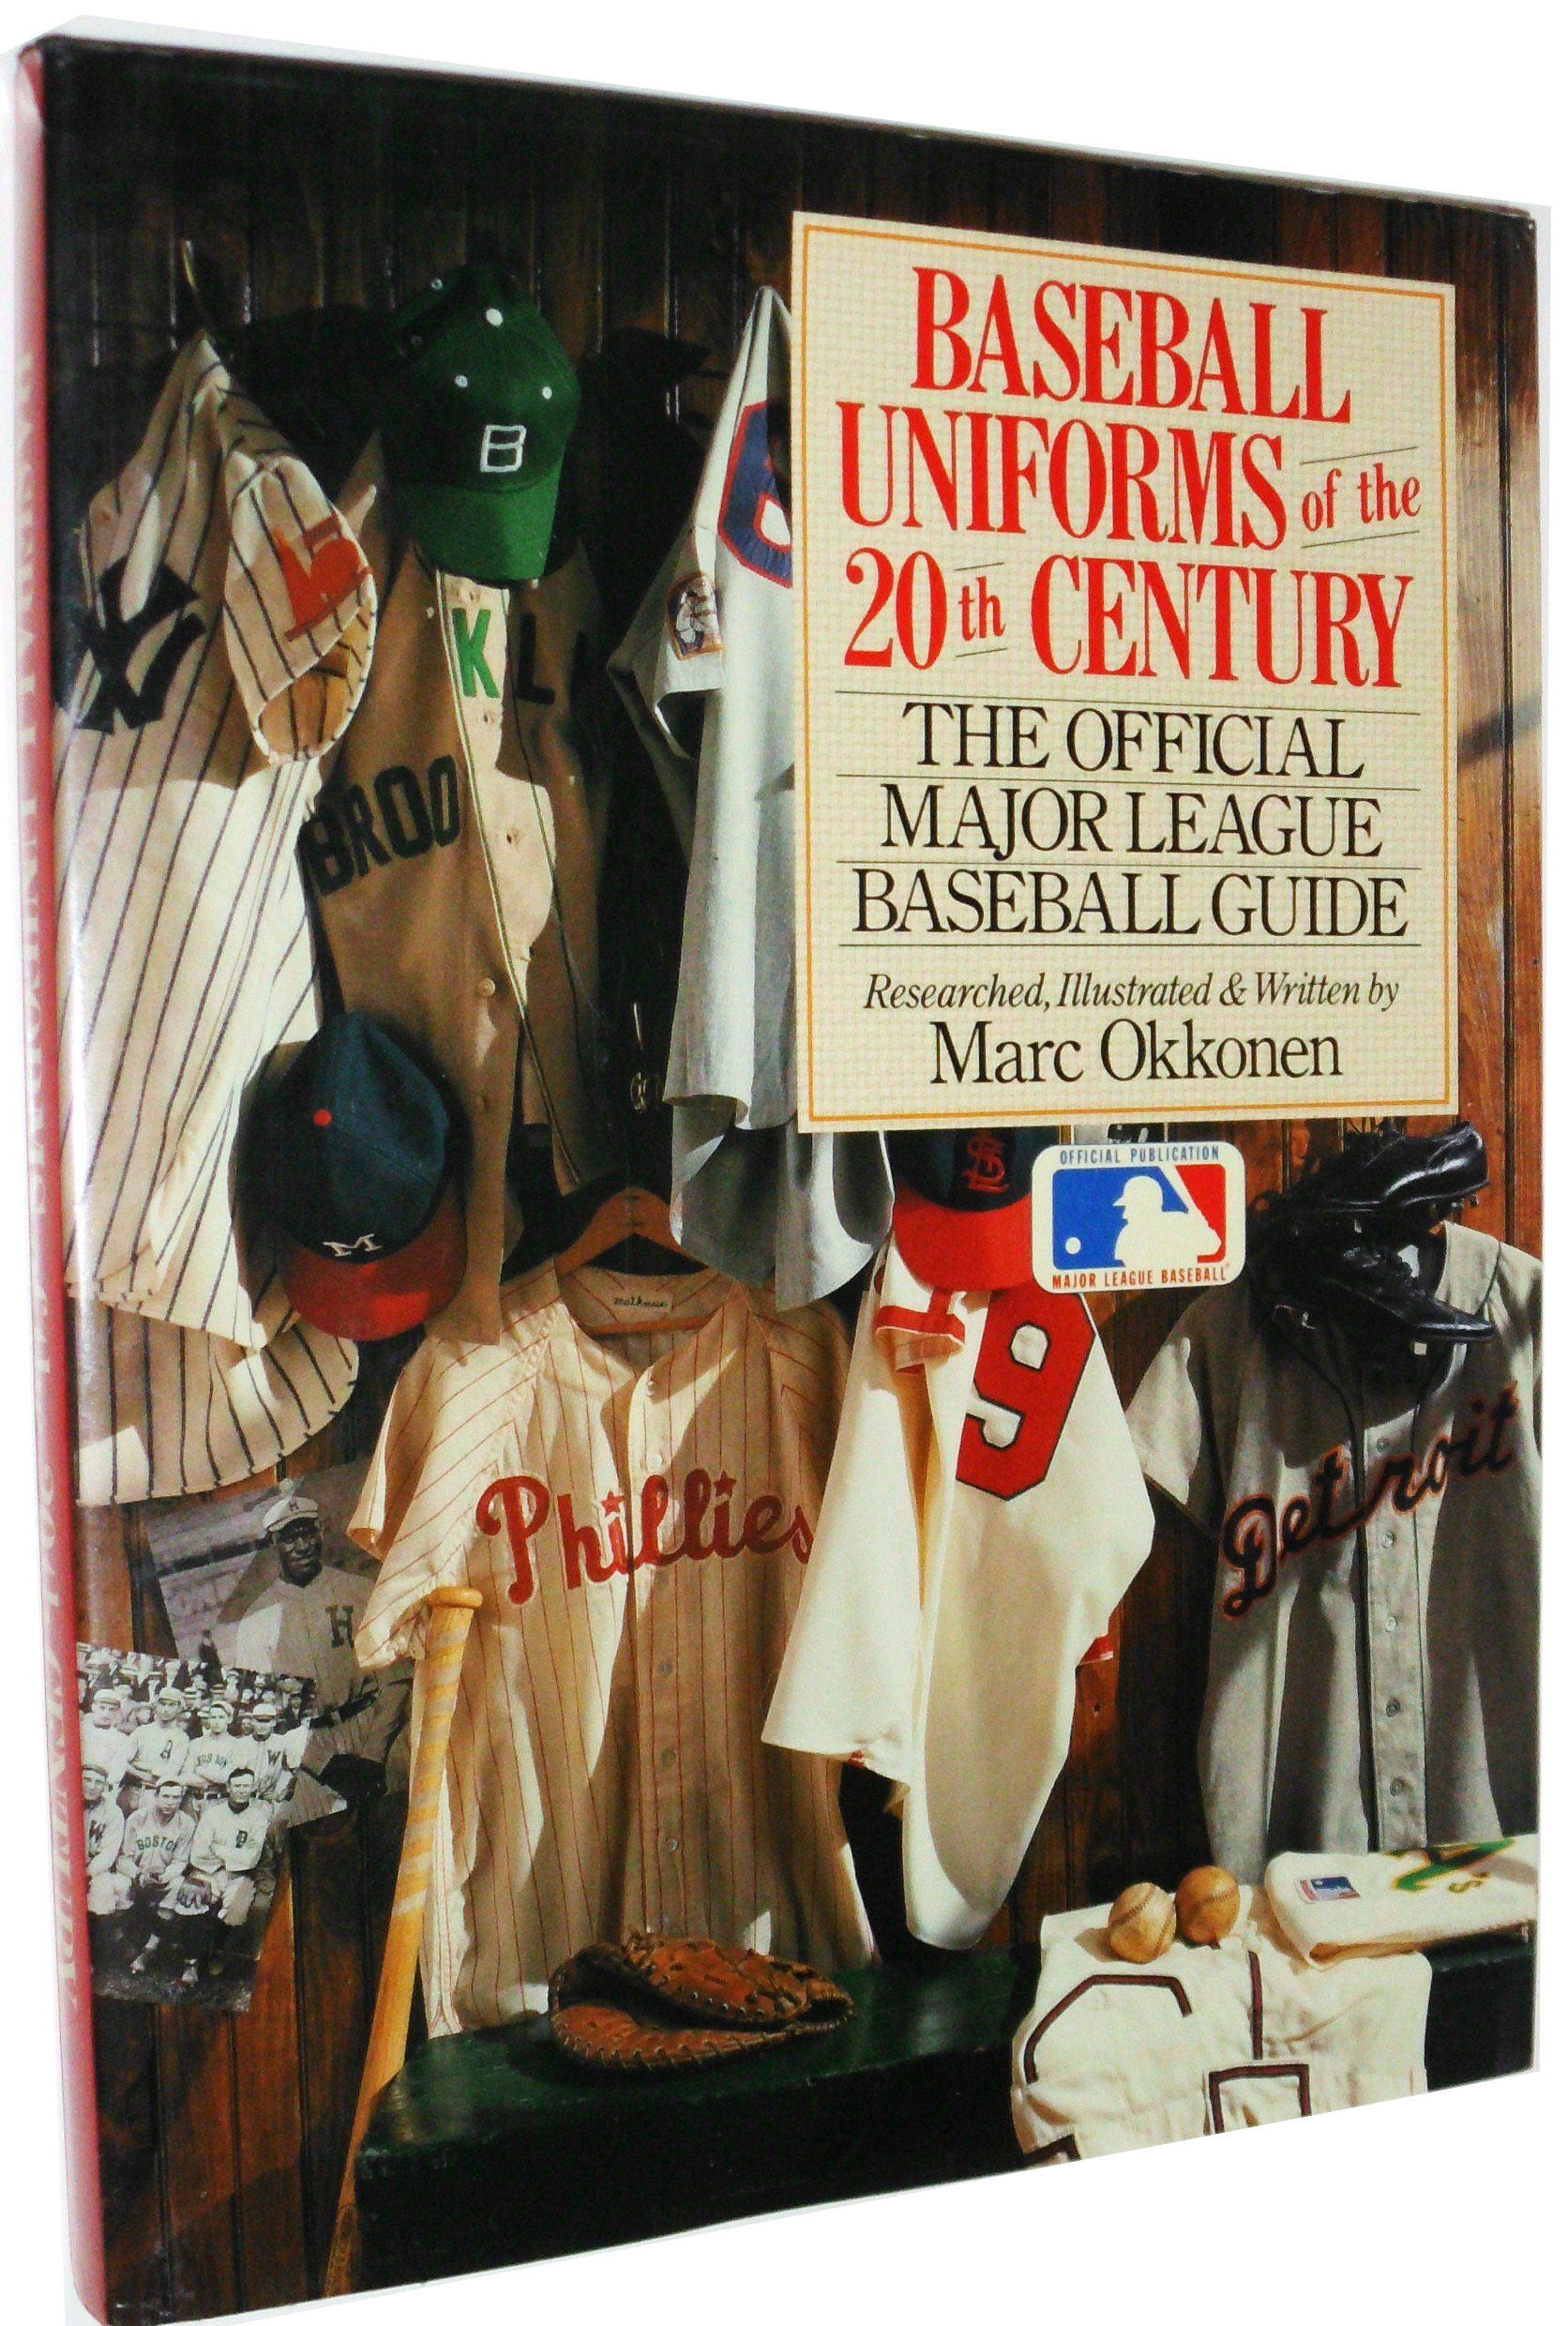 Baseball Uniforms of the 20th Century